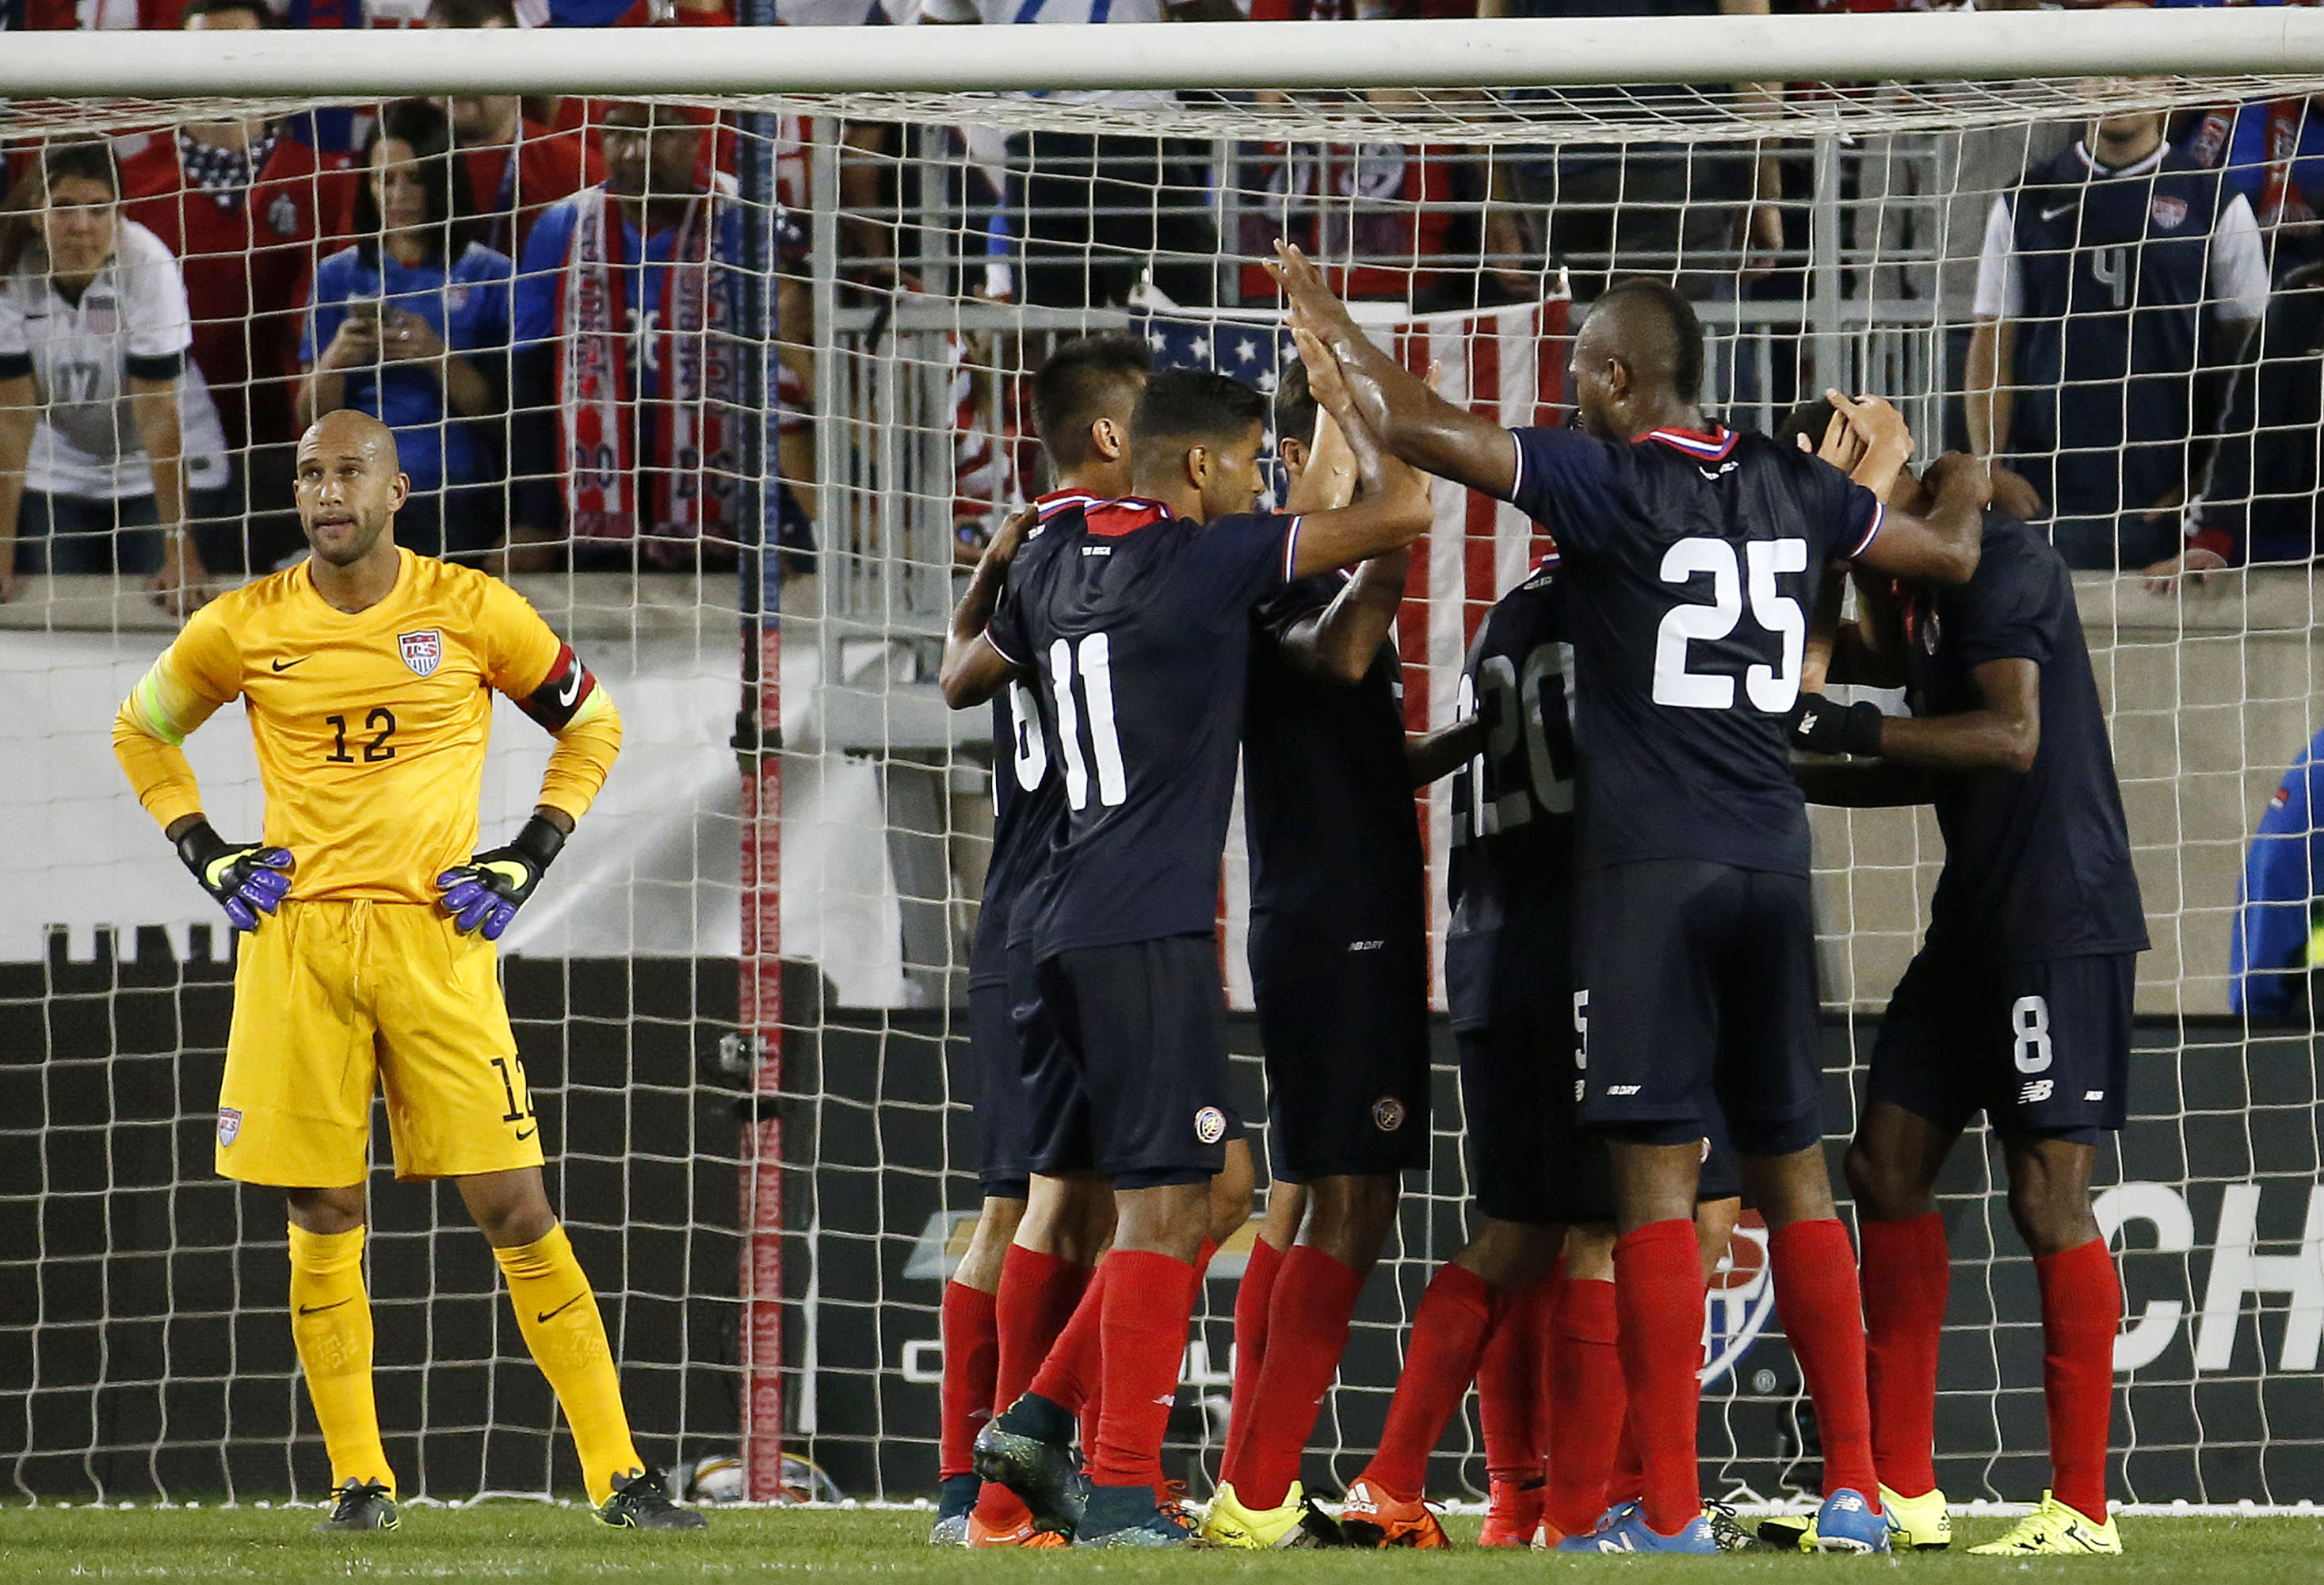 With Howard back in goal, US loses to Costa Rica 1-0